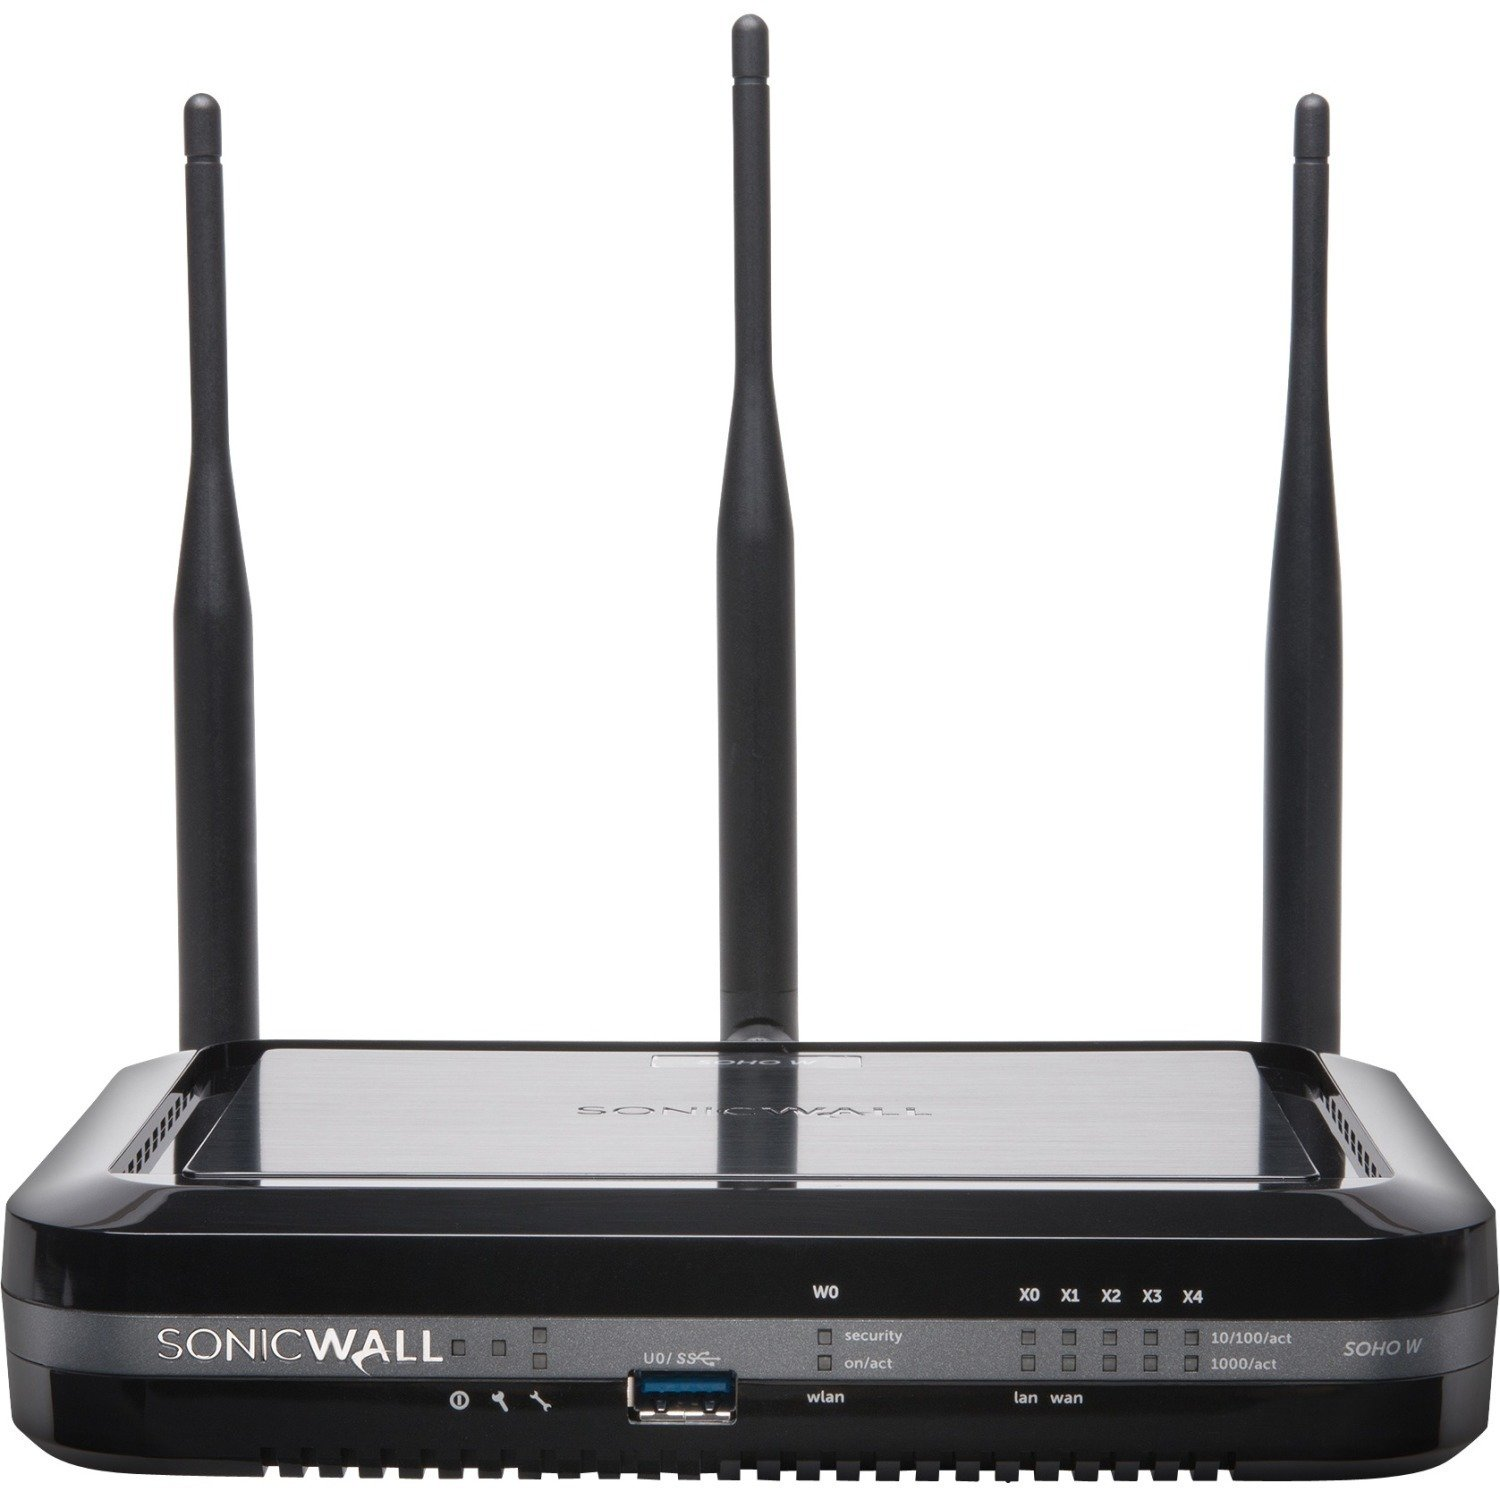 sonicwall soho wireless n gen5 firewall replacement with on sonic wall id=58378